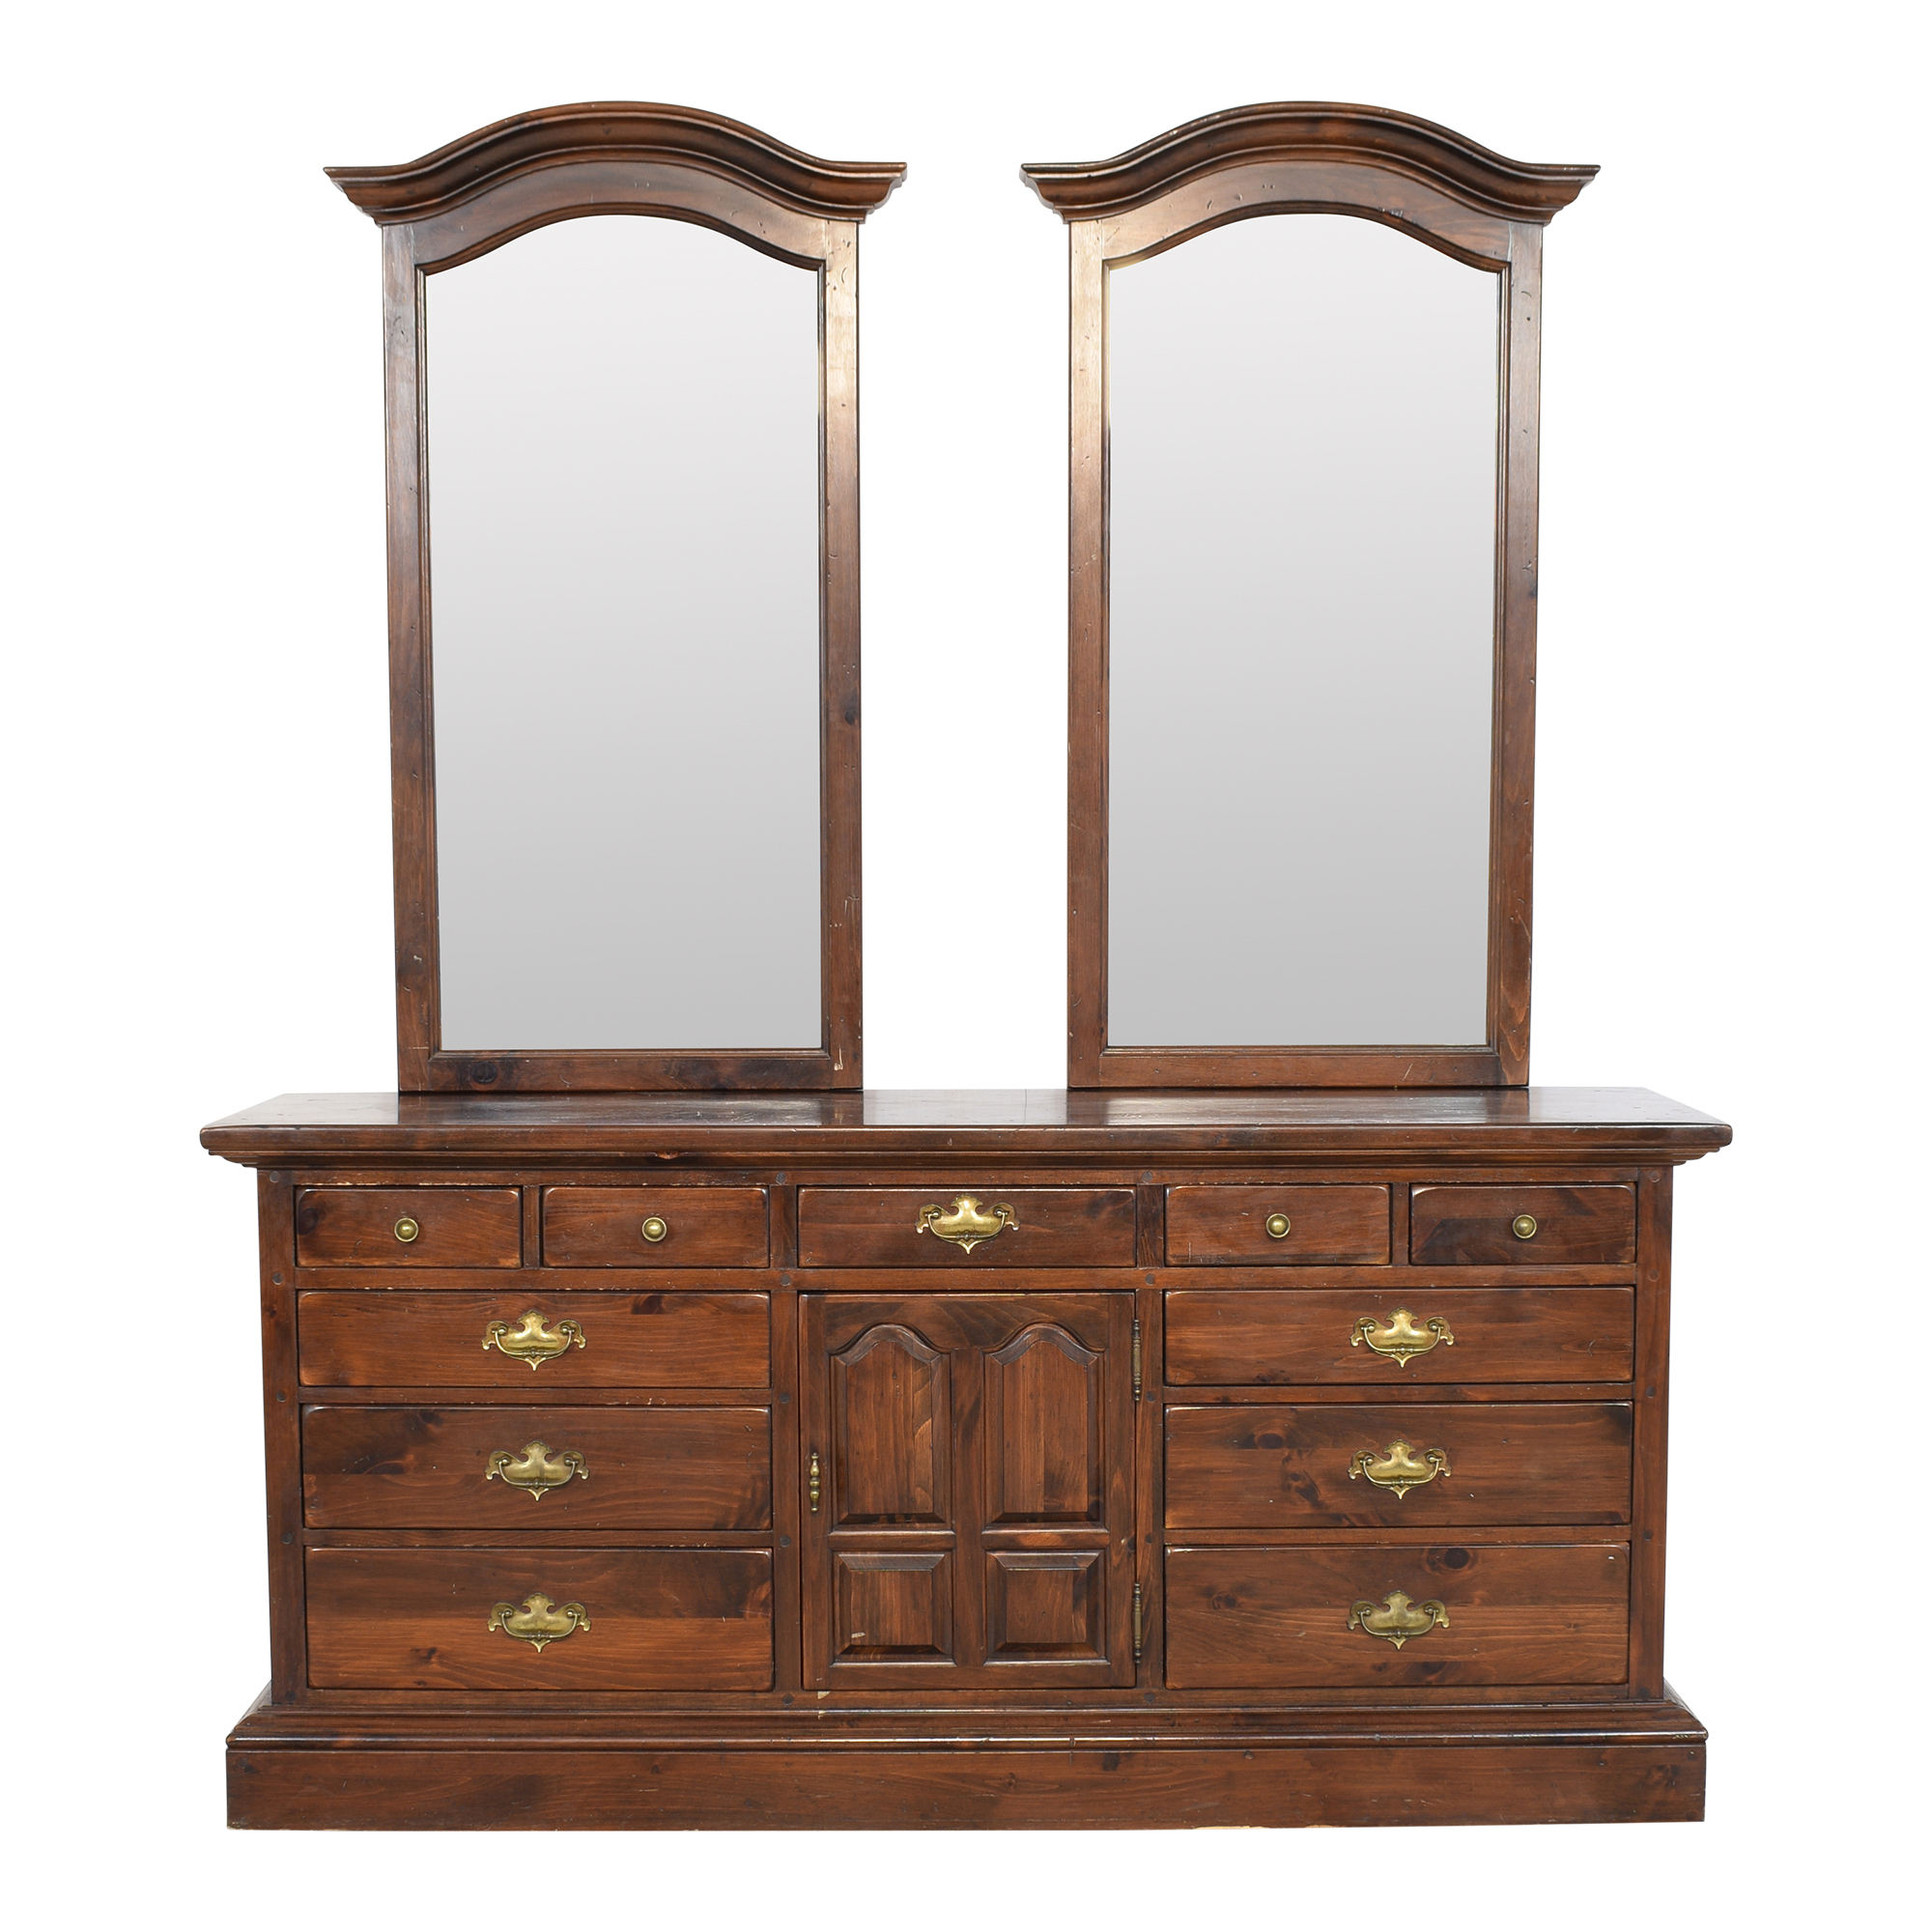 shop Ethan Allen Old Tavern Triple Door Dresser with Twin Mirrors Ethan Allen Storage